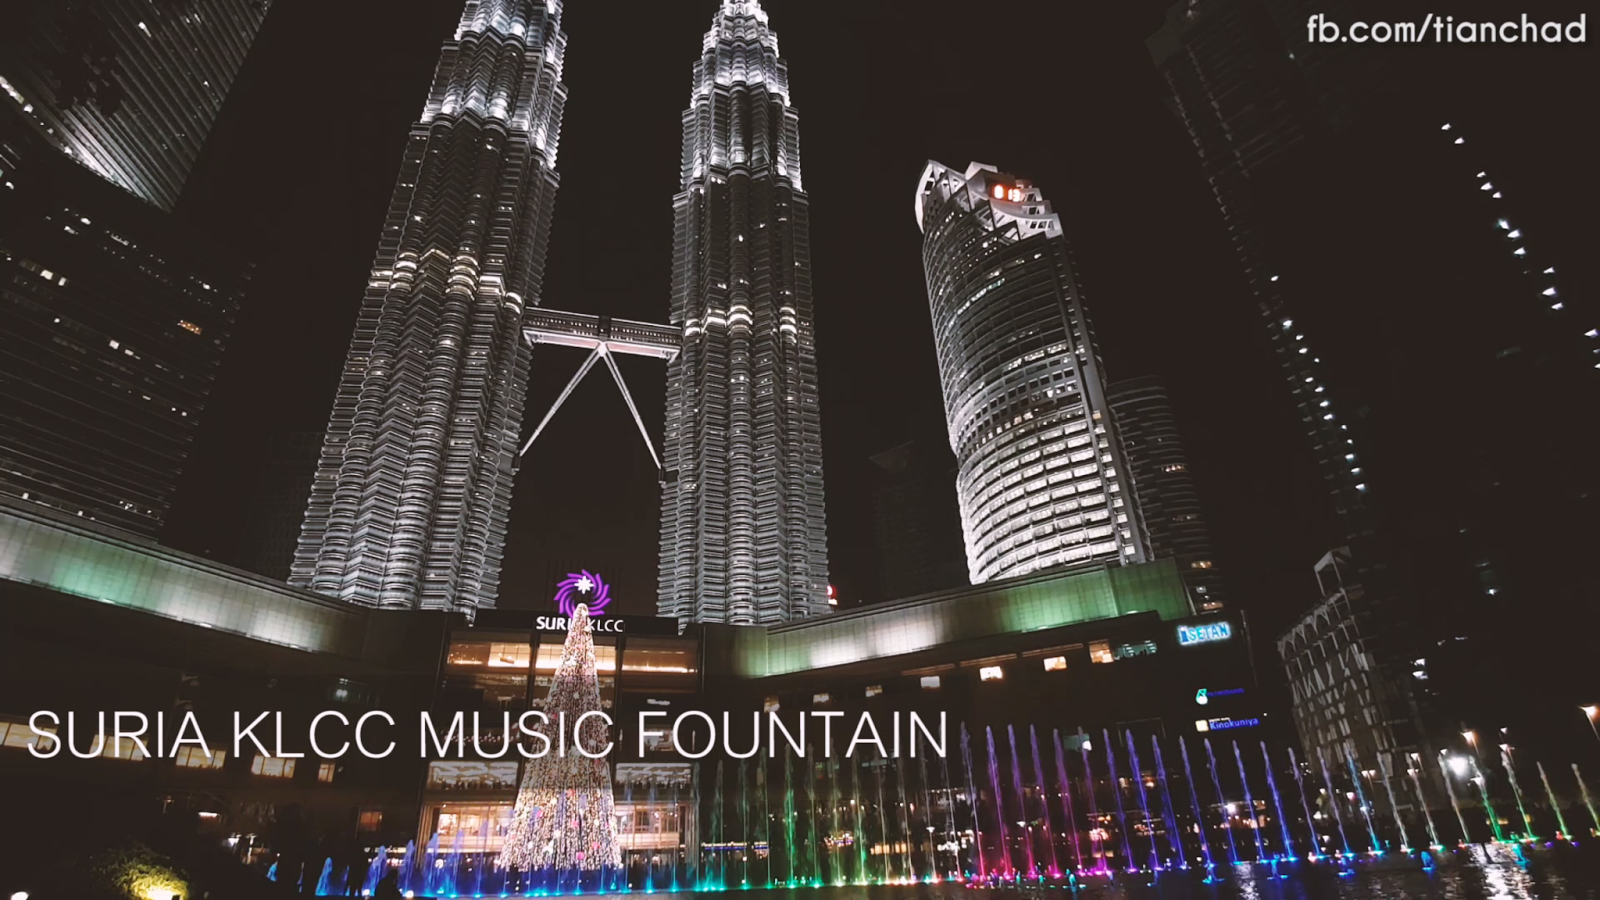 Suria KLCC Music Fountain at night is very colorful